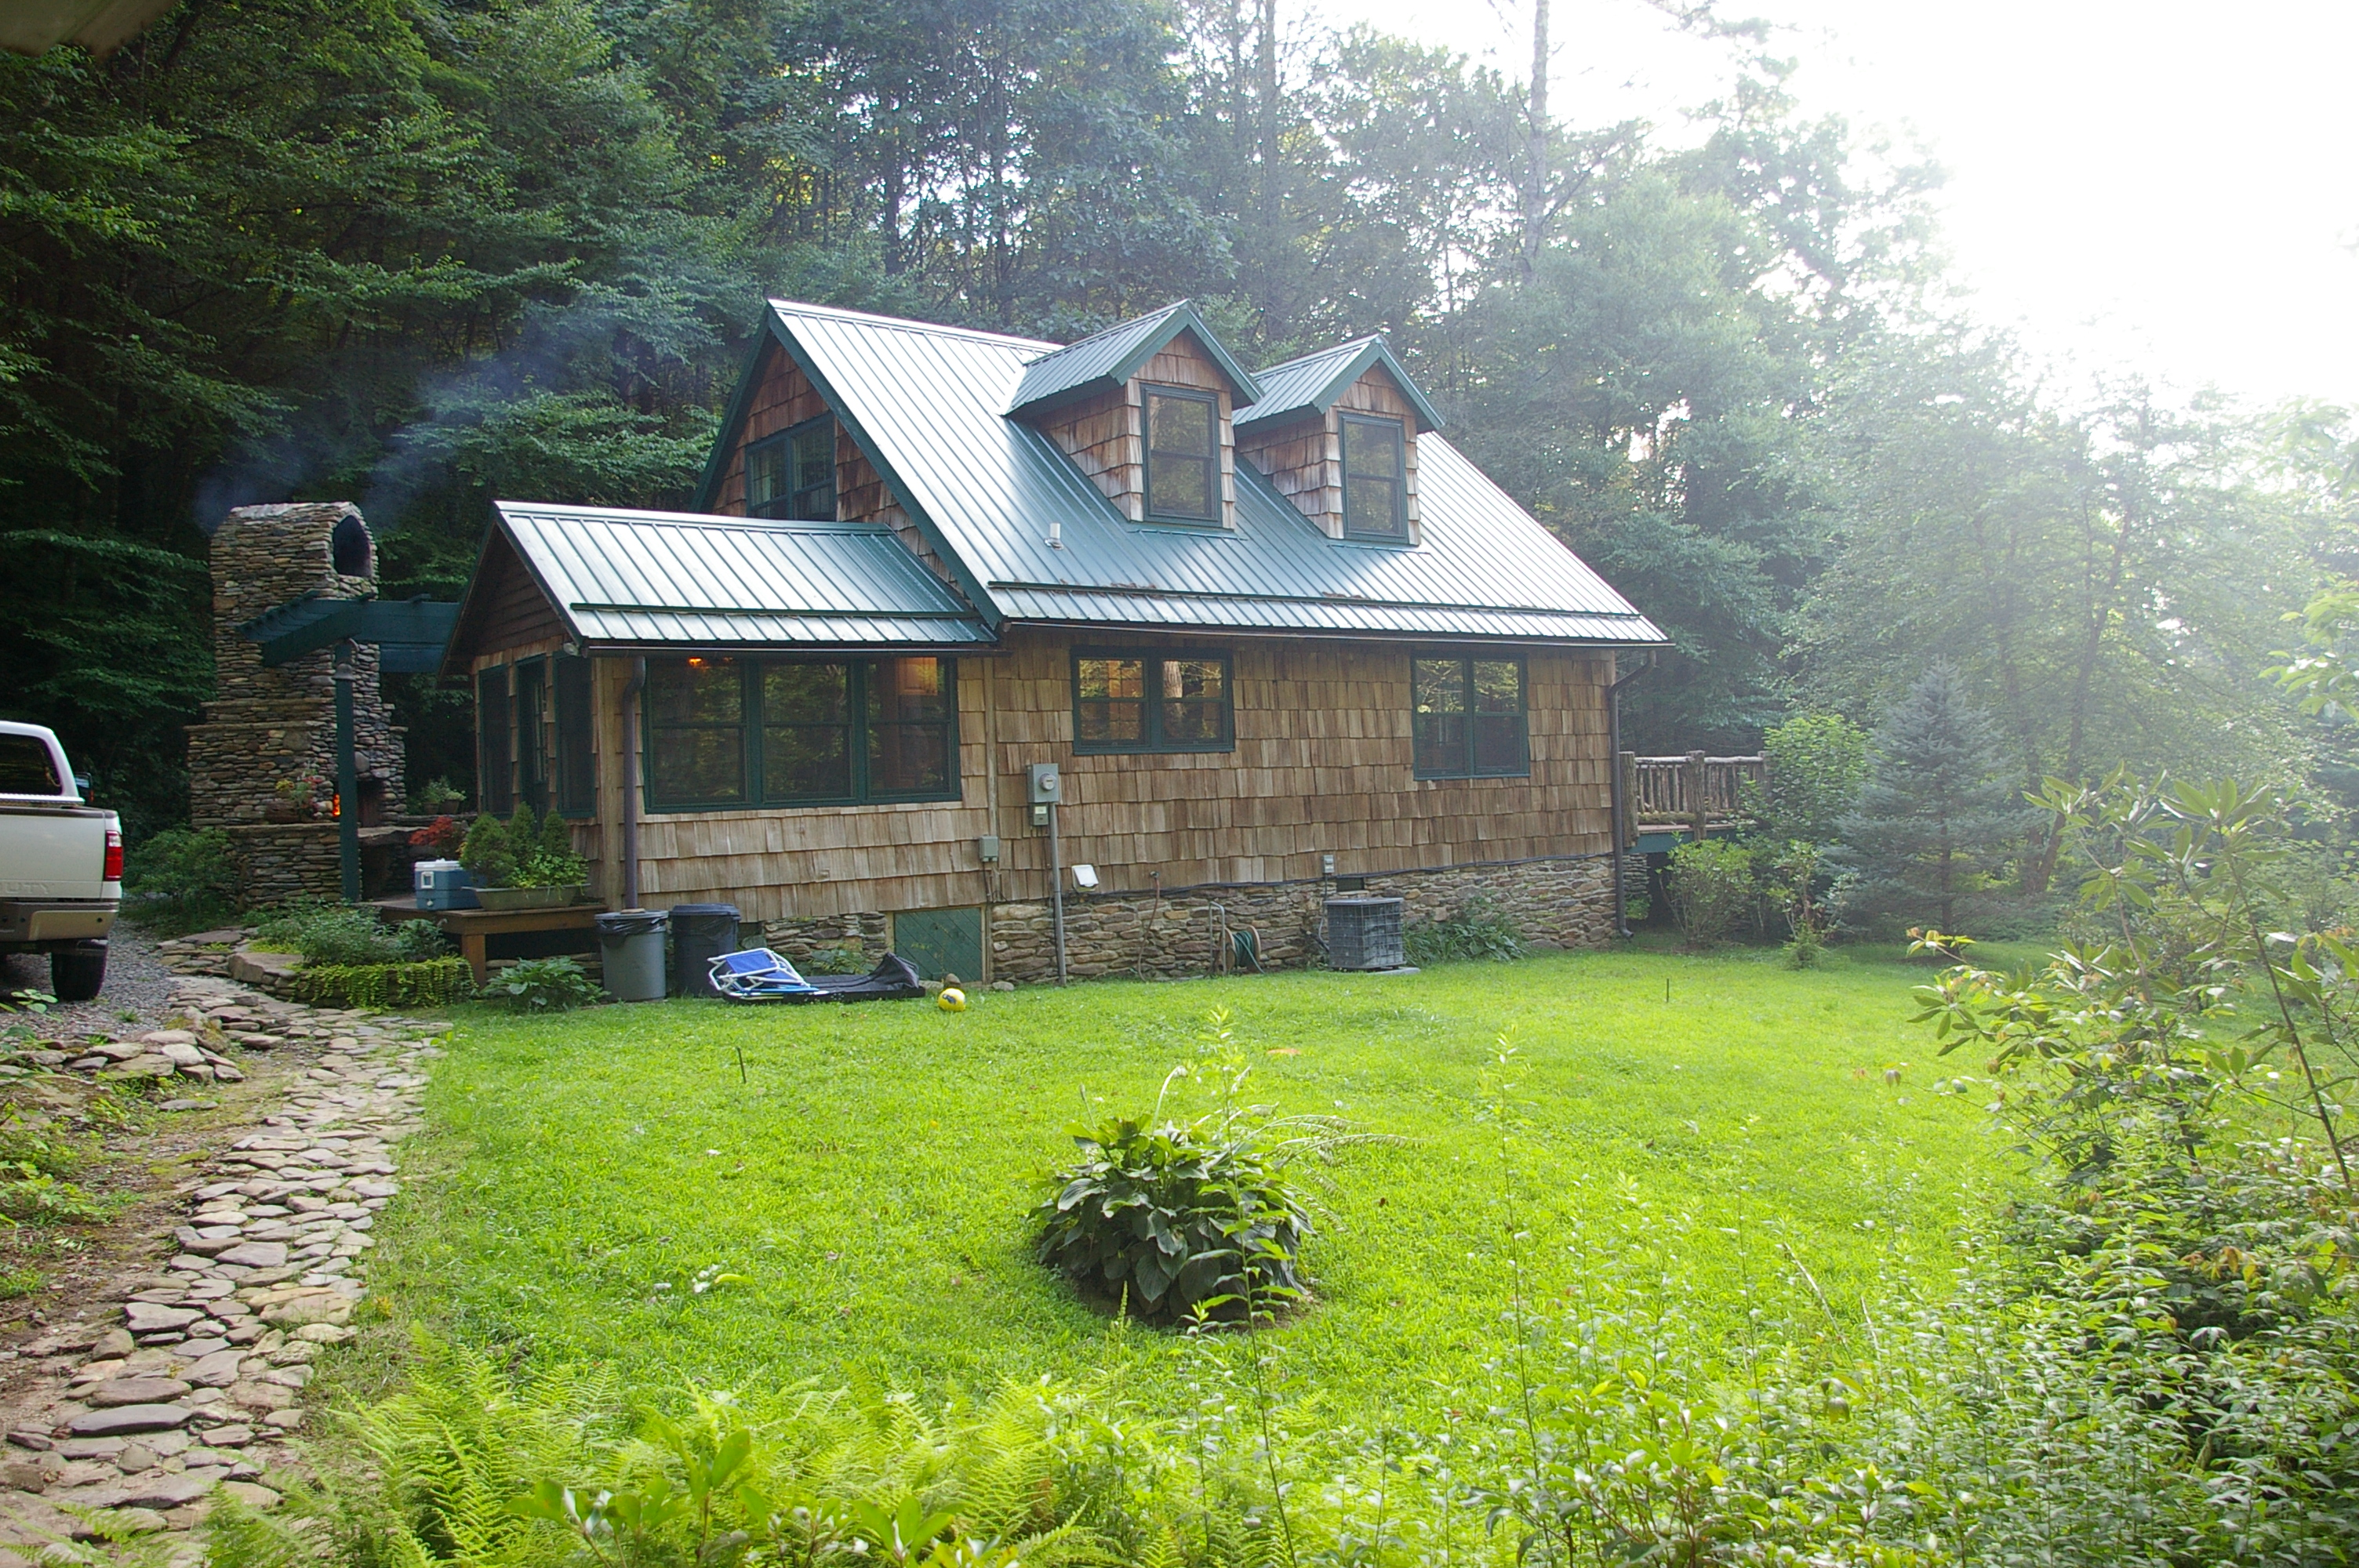 mile in near this located need cabins state ideally outdoor to adventures comfortable within one is for forest of look search home basecamp places brevard dupont a nc stay lodging results your no further wnc